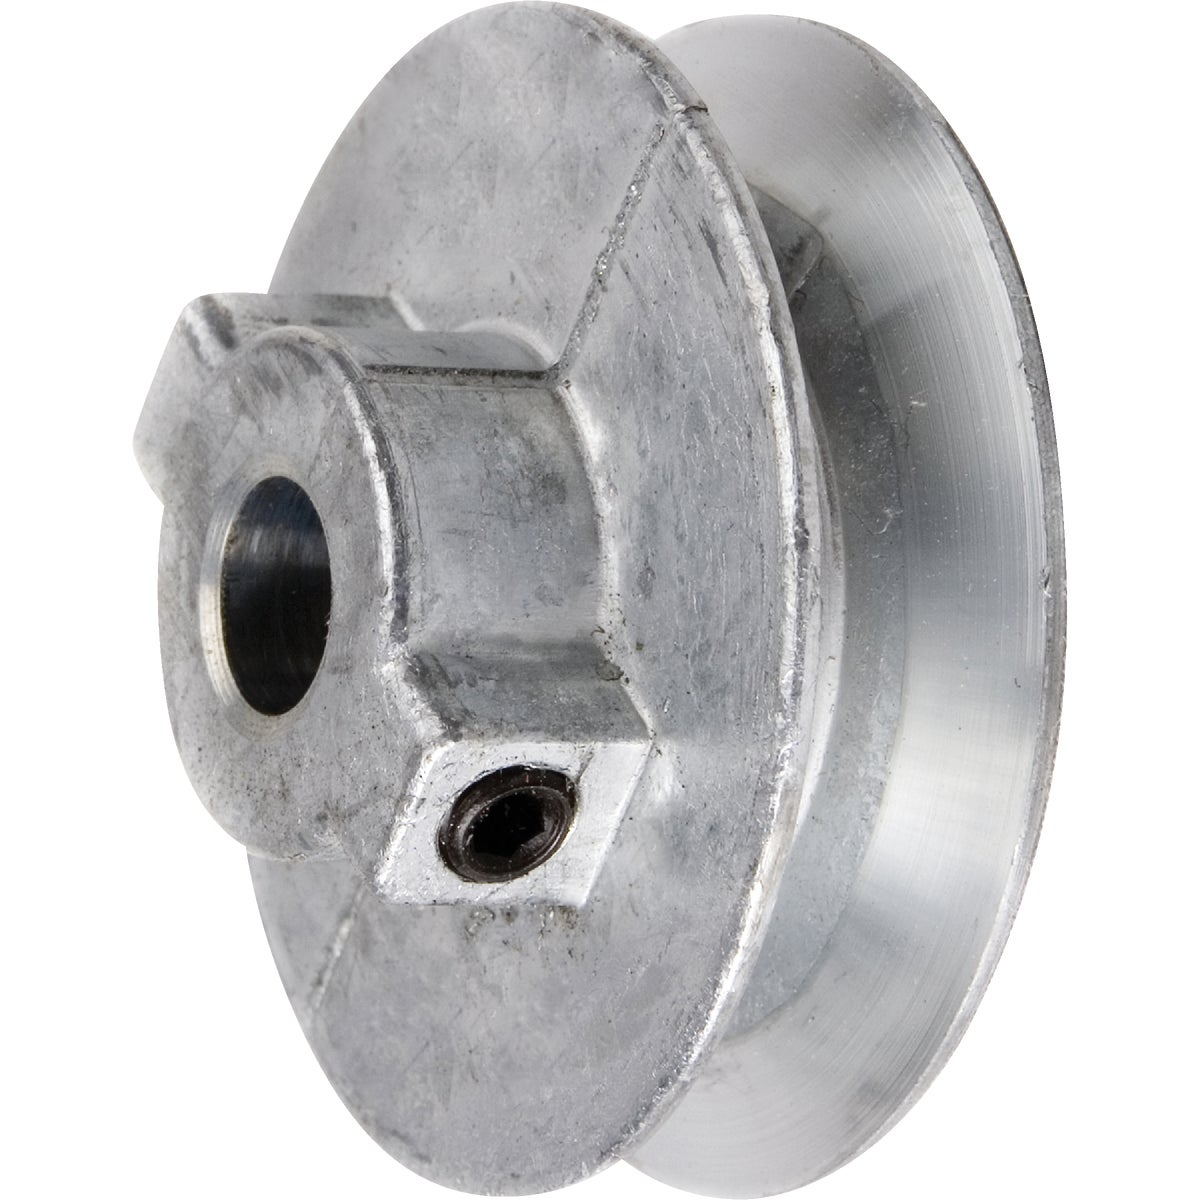 2-1/4X3/4 PULLEY